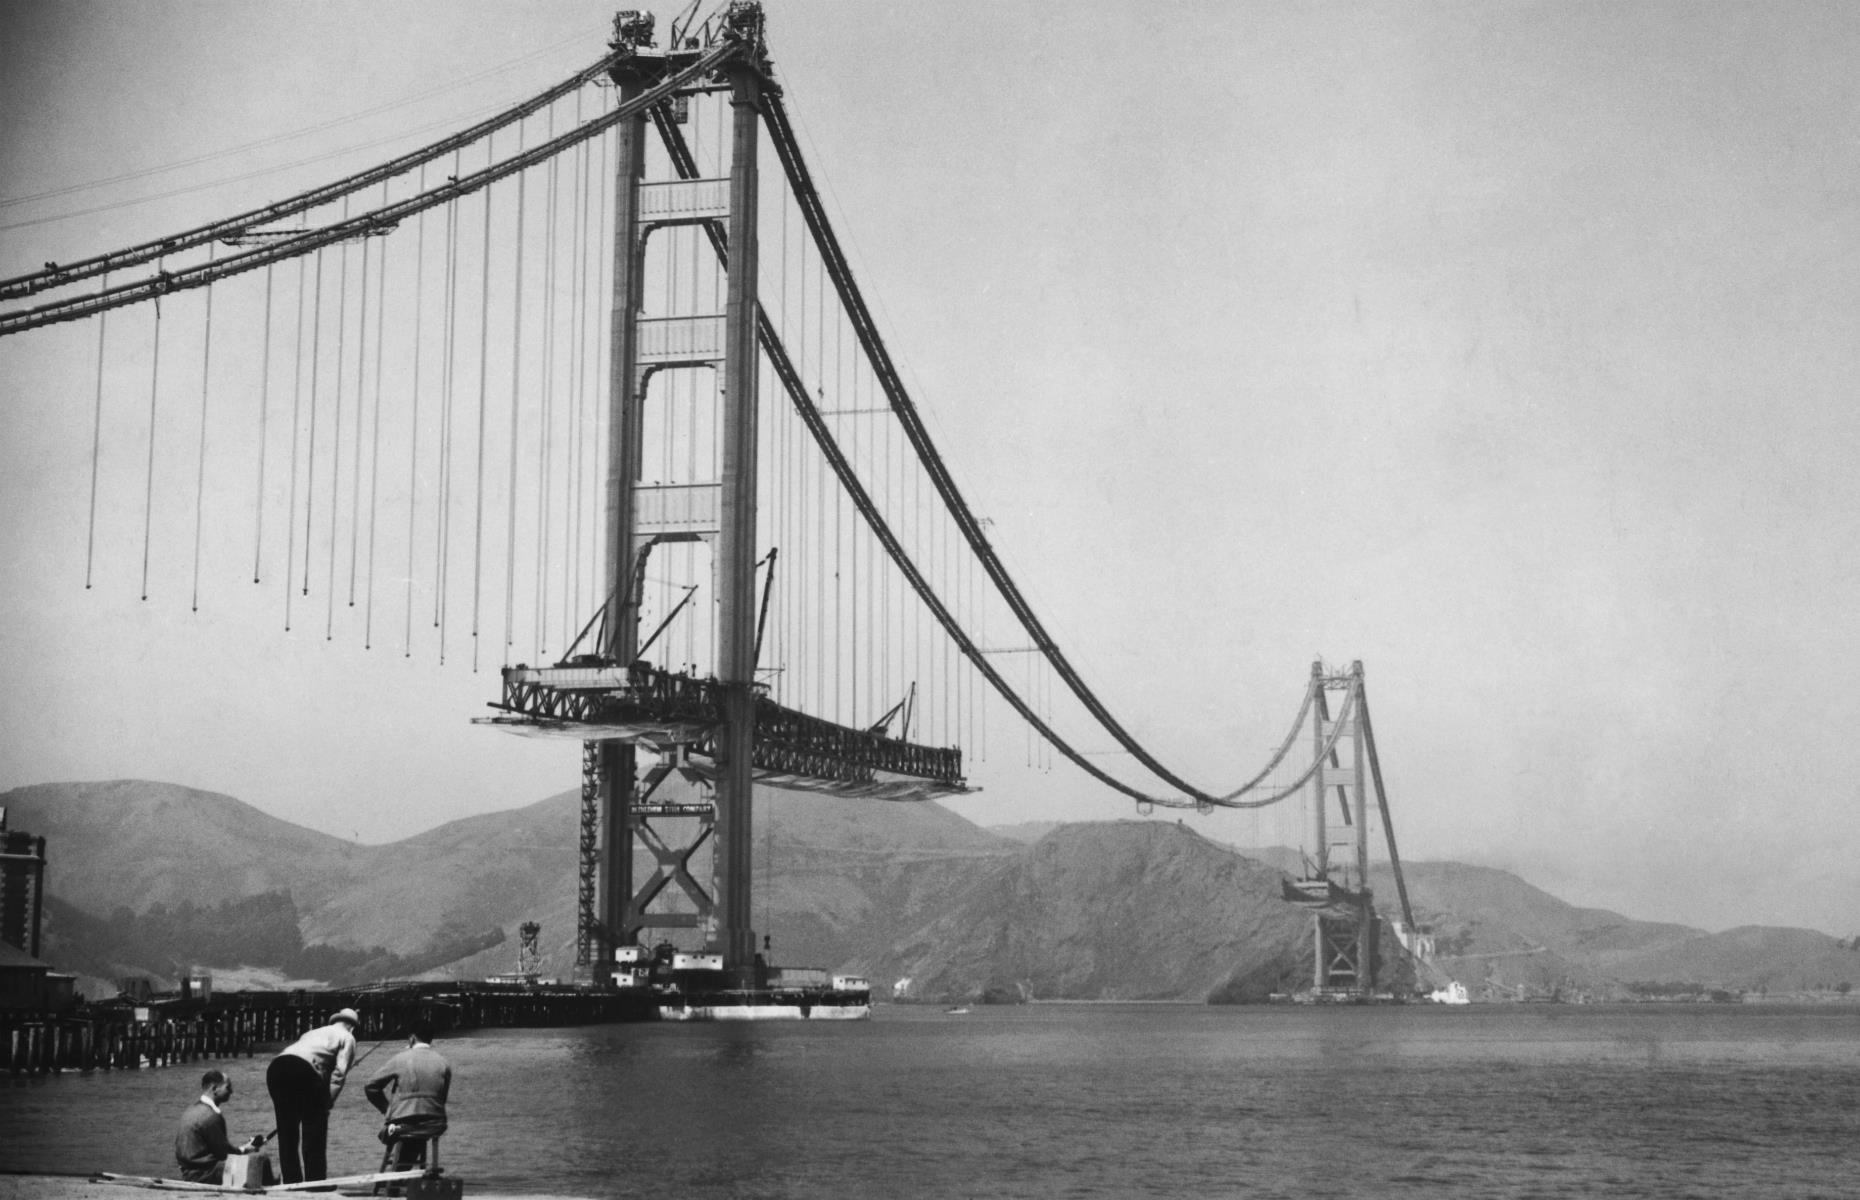 Slide 43 of 47: Arguably America's most famous bridge, the red-orange Golden Gate has spanned its namesake strait since 1937. When first completed, it was the longest and tallest suspension bridge on the planet, and its awesome size still wows modern visitors. The nascent bridge is pictured here in the mid-1930s, when its towers stood tall, but the main span was yet to be built.